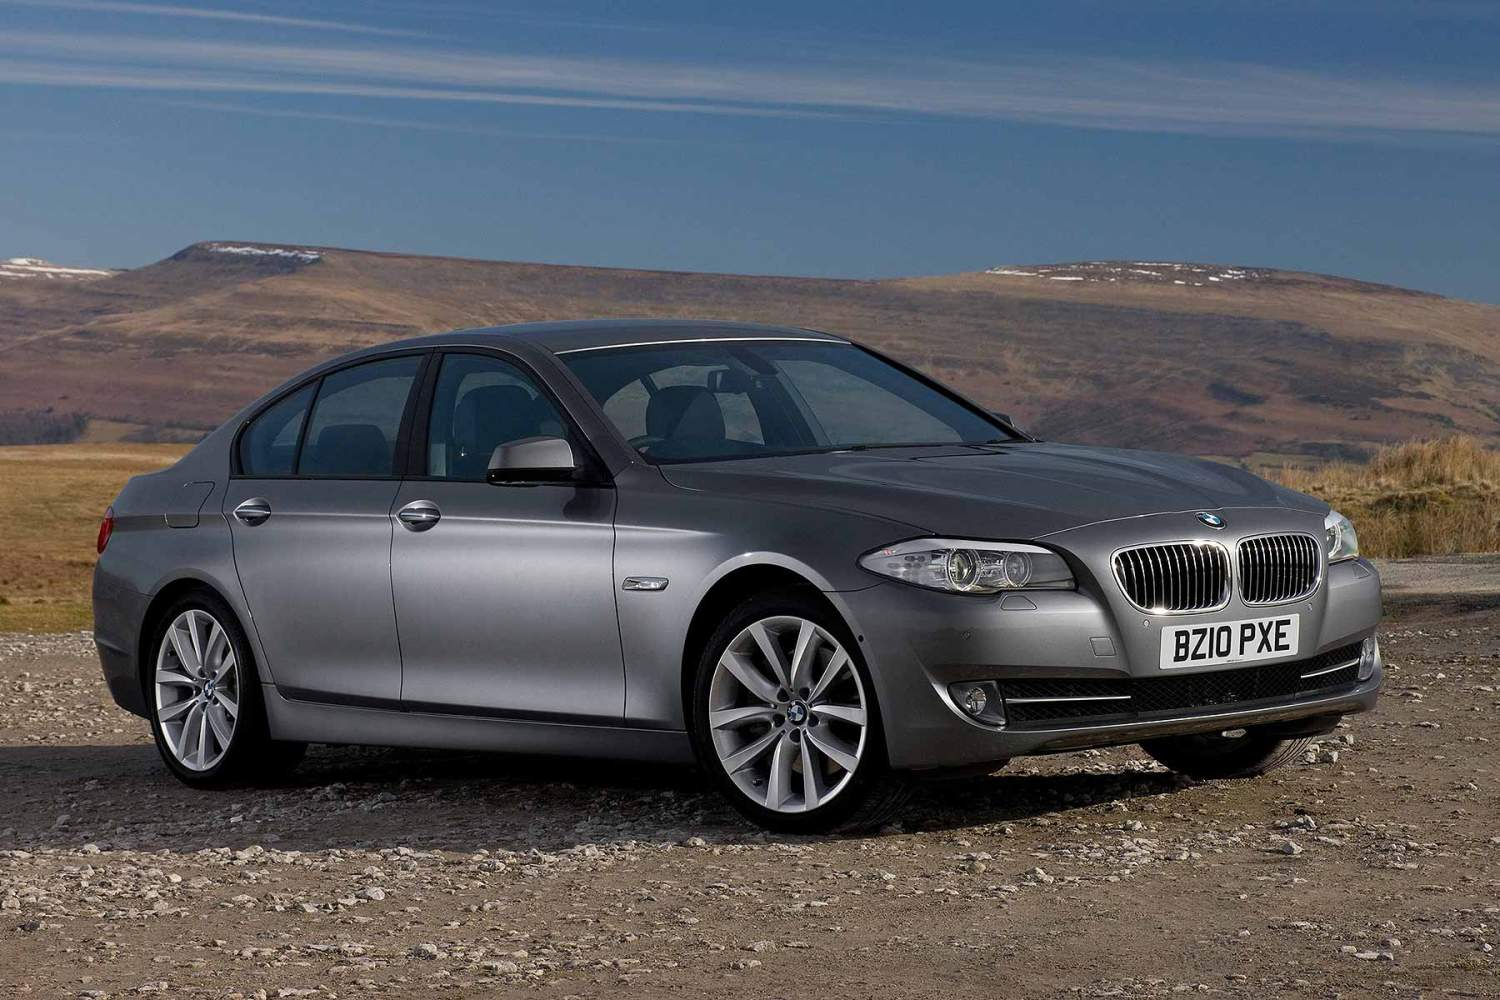 BMW expands diesel fire recall to 1 6 million vehicles – and 268,000